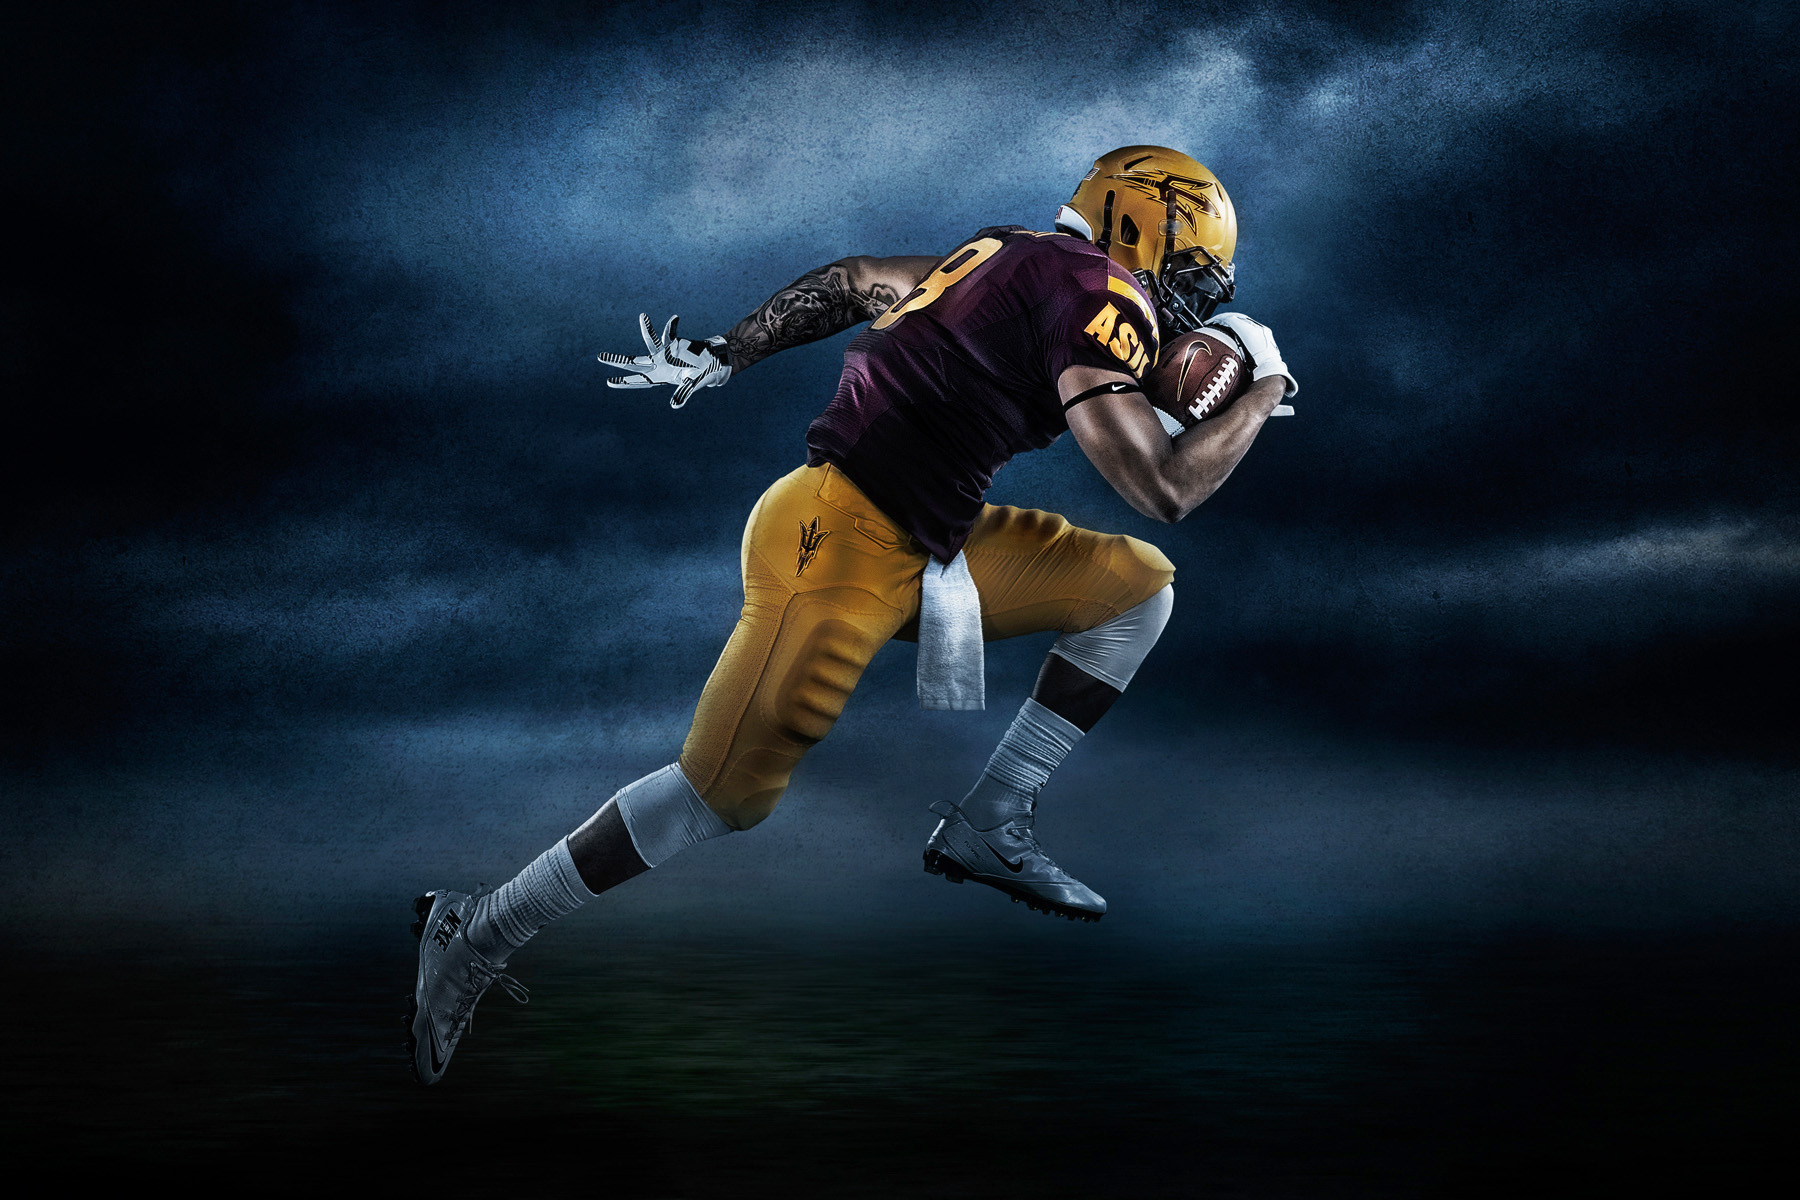 Sports advertising photographer from Arizona